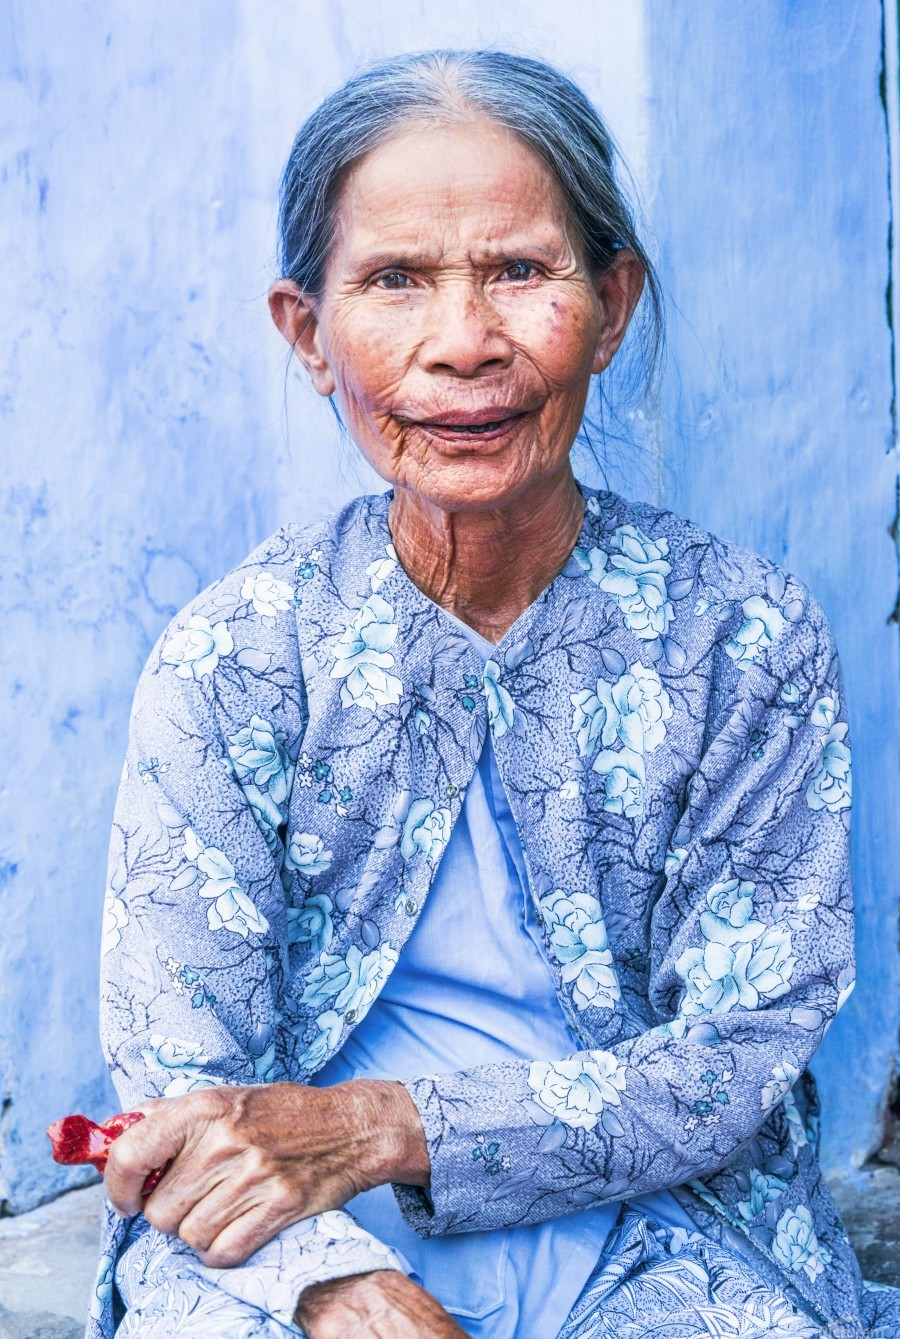 THE BLUE LADY OF HOI AN  Print